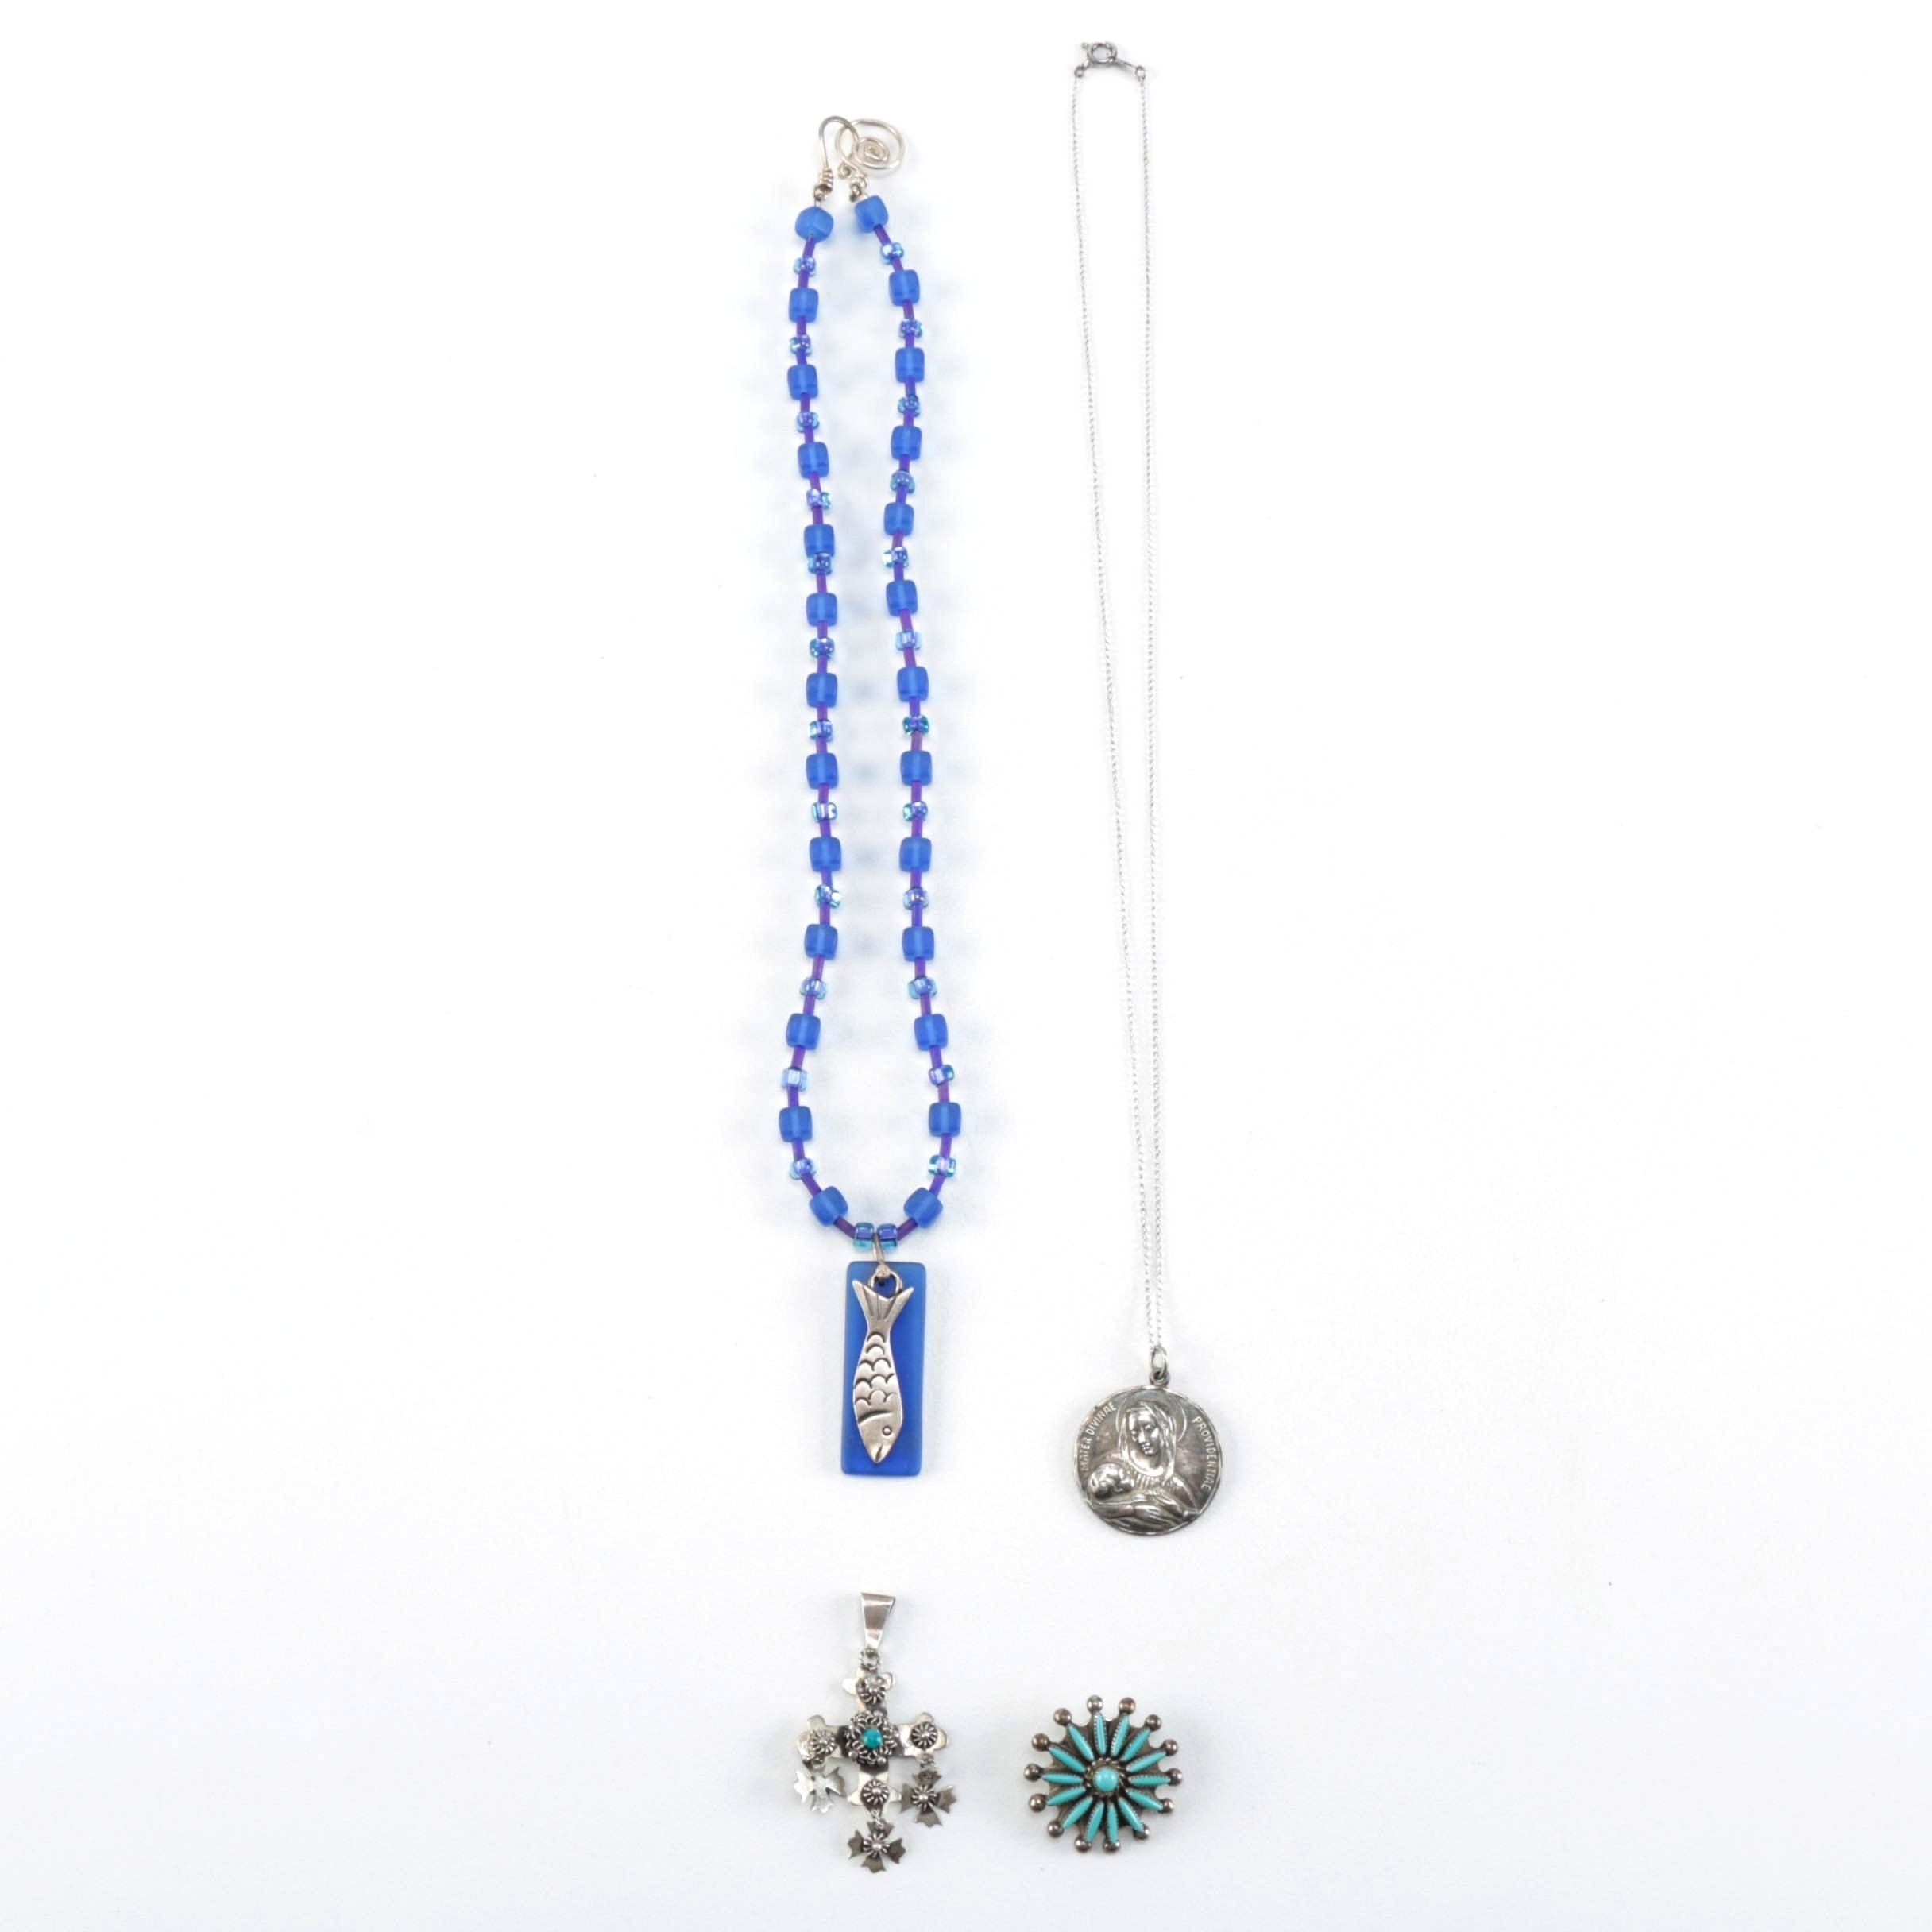 Sterling Silver Jewelry With Religious Pendants